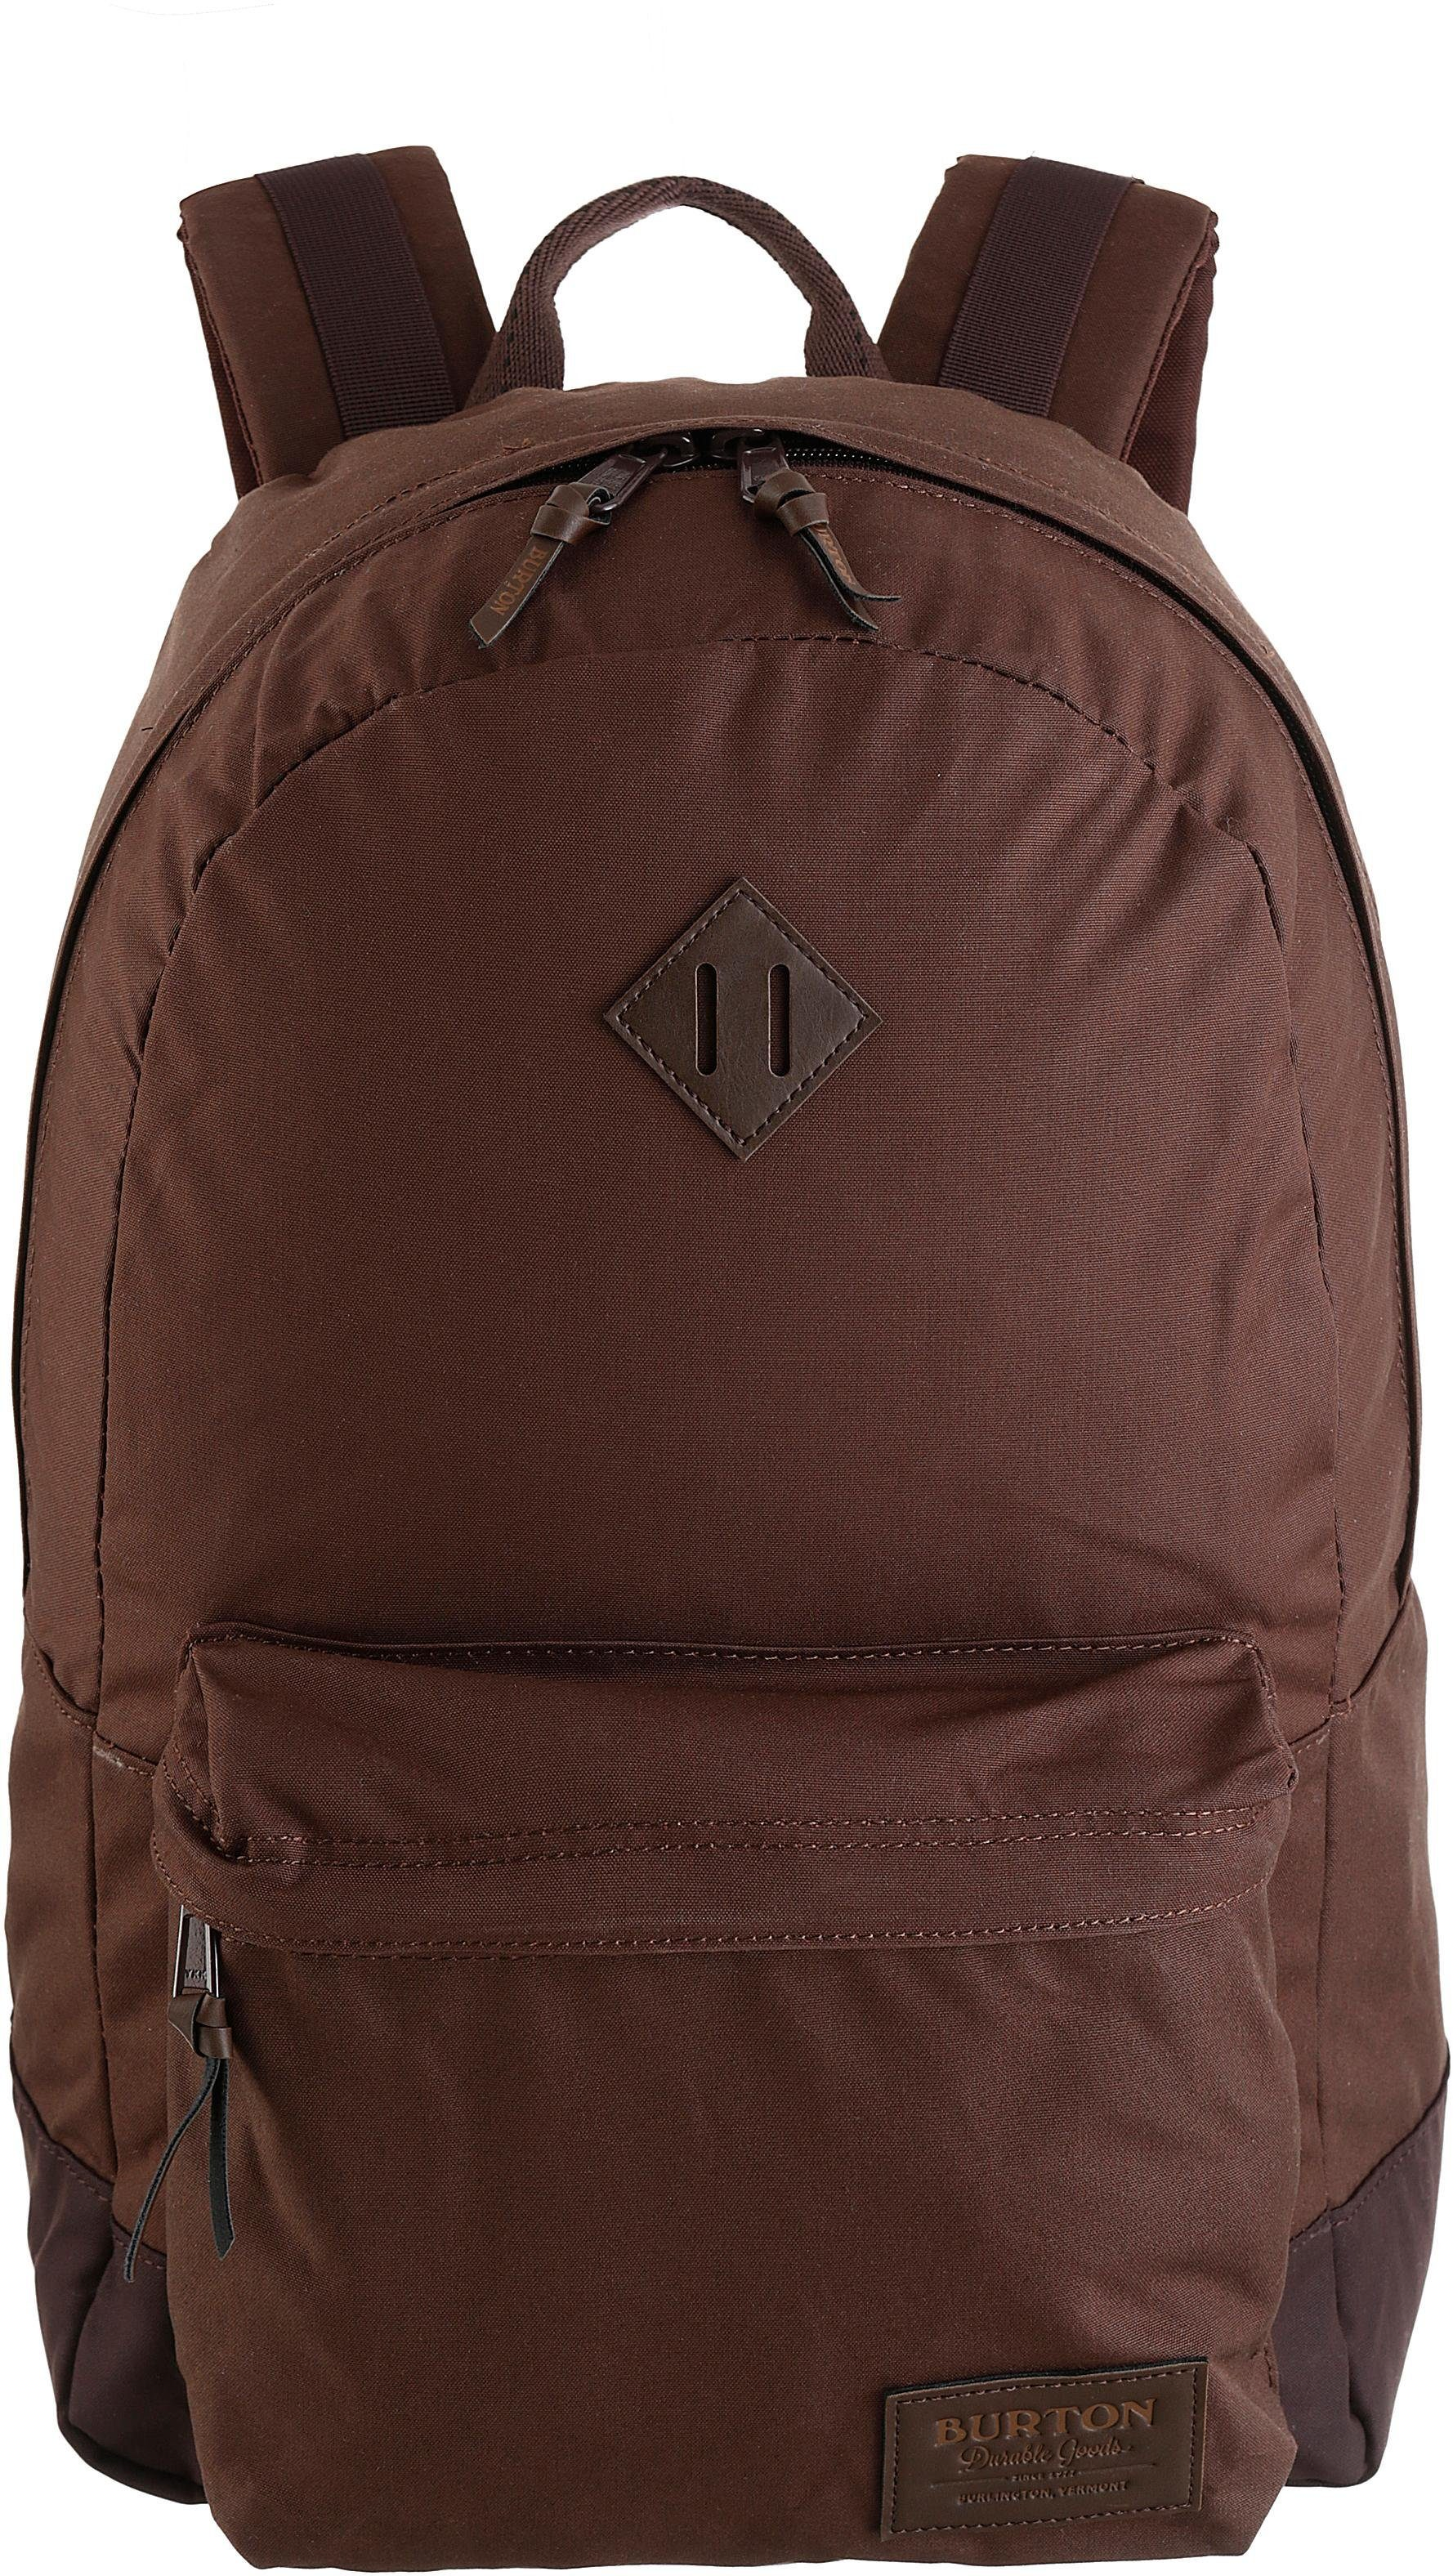 Burton Rucksack, »Kettle, Cocoa Brown Waxed Canvas«